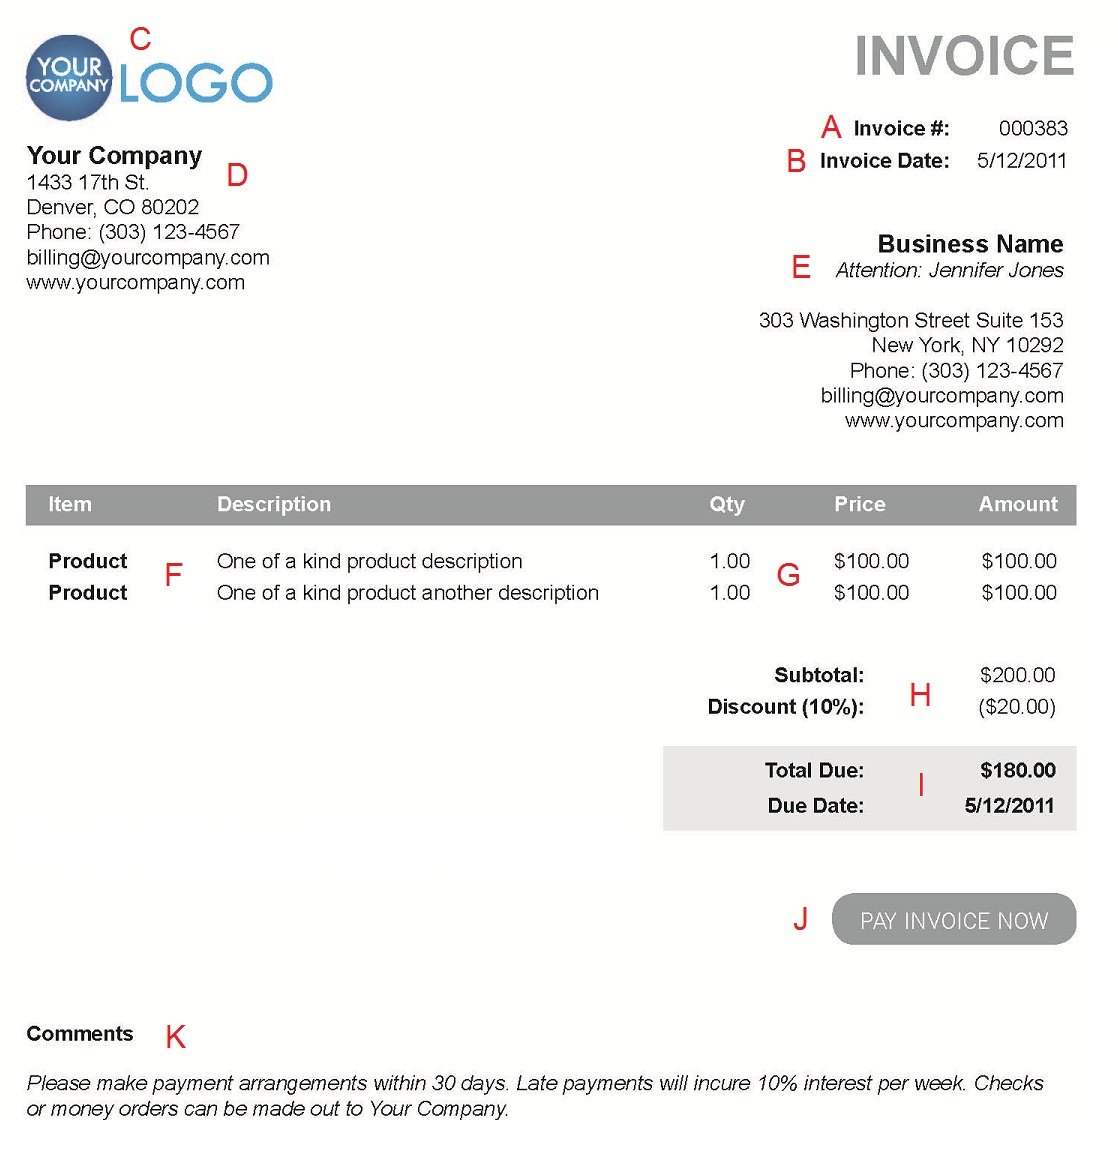 Coolmathgamesus  Prepossessing The  Different Sections Of An Electronic Payment Invoice With Luxury A  With Awesome Citylink Late Toll Invoice Cost Also Layout Of An Invoice In Addition Computer Invoice Template And Accounting Invoices As Well As Freelance Invoice Template Excel Additionally Ato Tax Invoices From Paysimplecom With Coolmathgamesus  Luxury The  Different Sections Of An Electronic Payment Invoice With Awesome A  And Prepossessing Citylink Late Toll Invoice Cost Also Layout Of An Invoice In Addition Computer Invoice Template From Paysimplecom